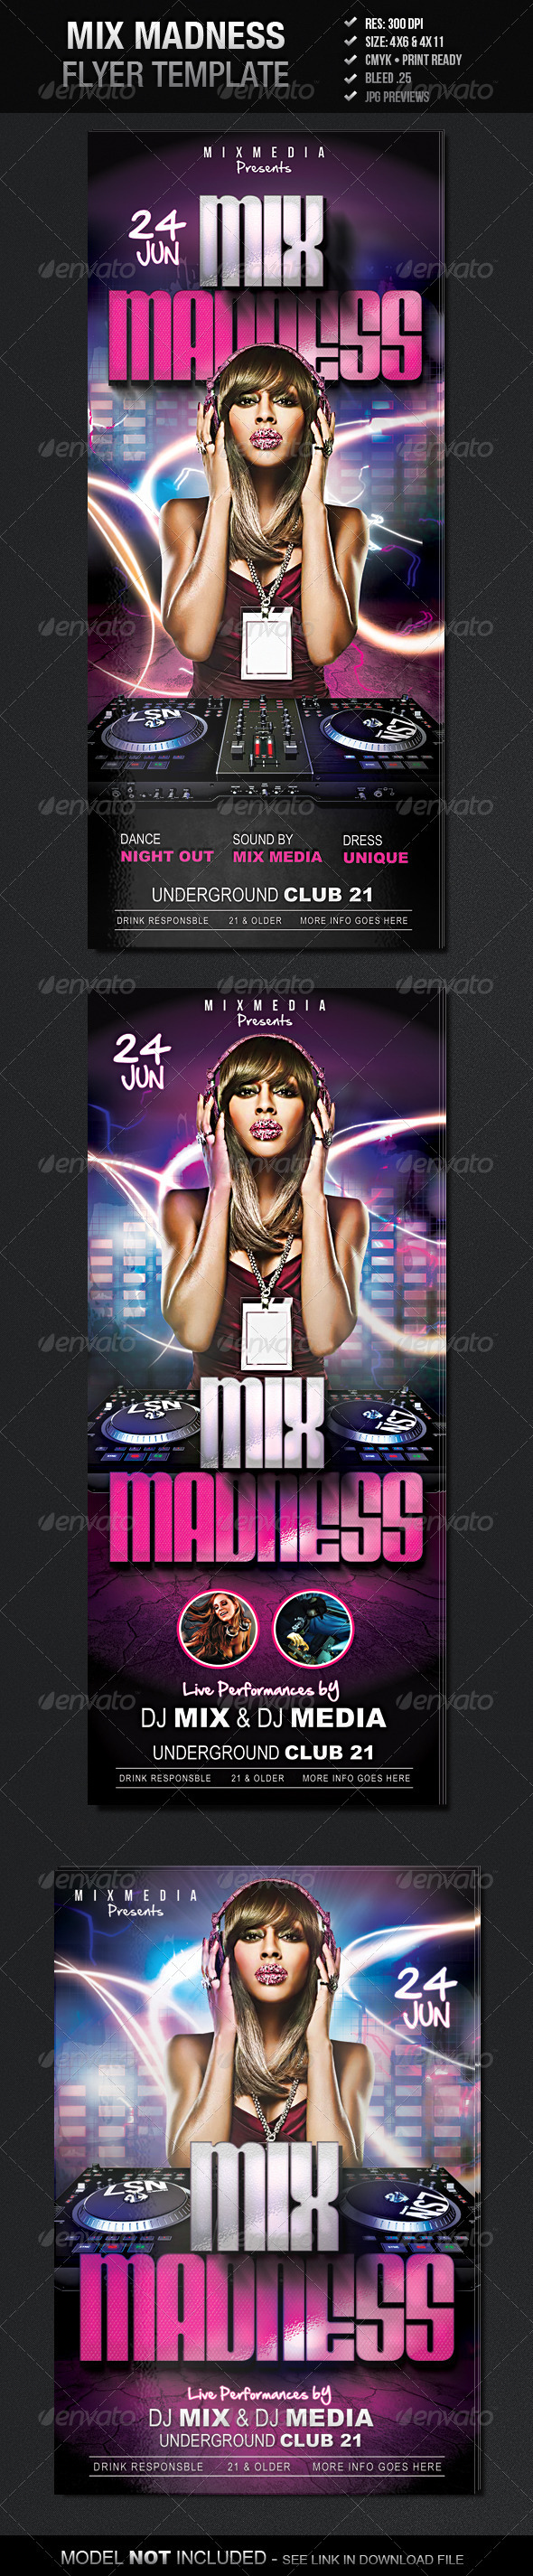 GraphicRiver Mix Madness Flyer Template 4320594